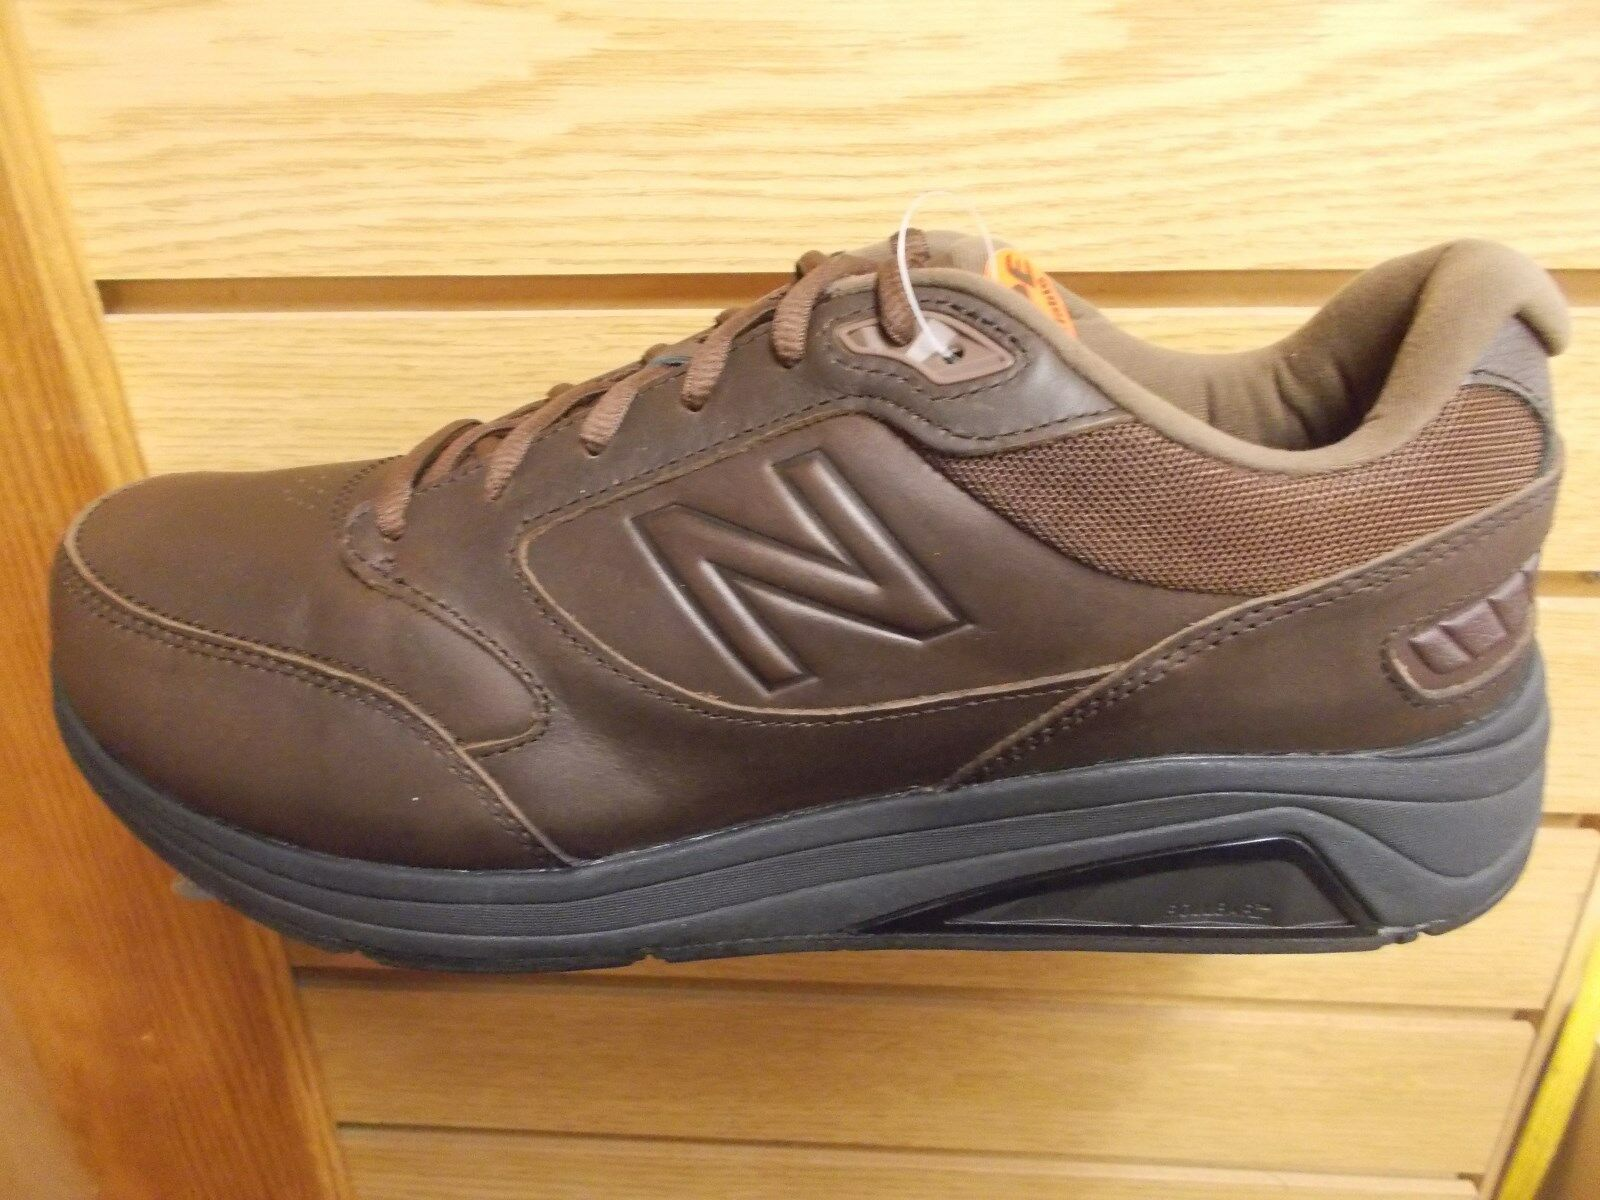 NEW BALANCE MEN'S MW928 BR3  BROWN WALKING SHOE V3 MEDIUM (D) WIDTH NEW IN BOX